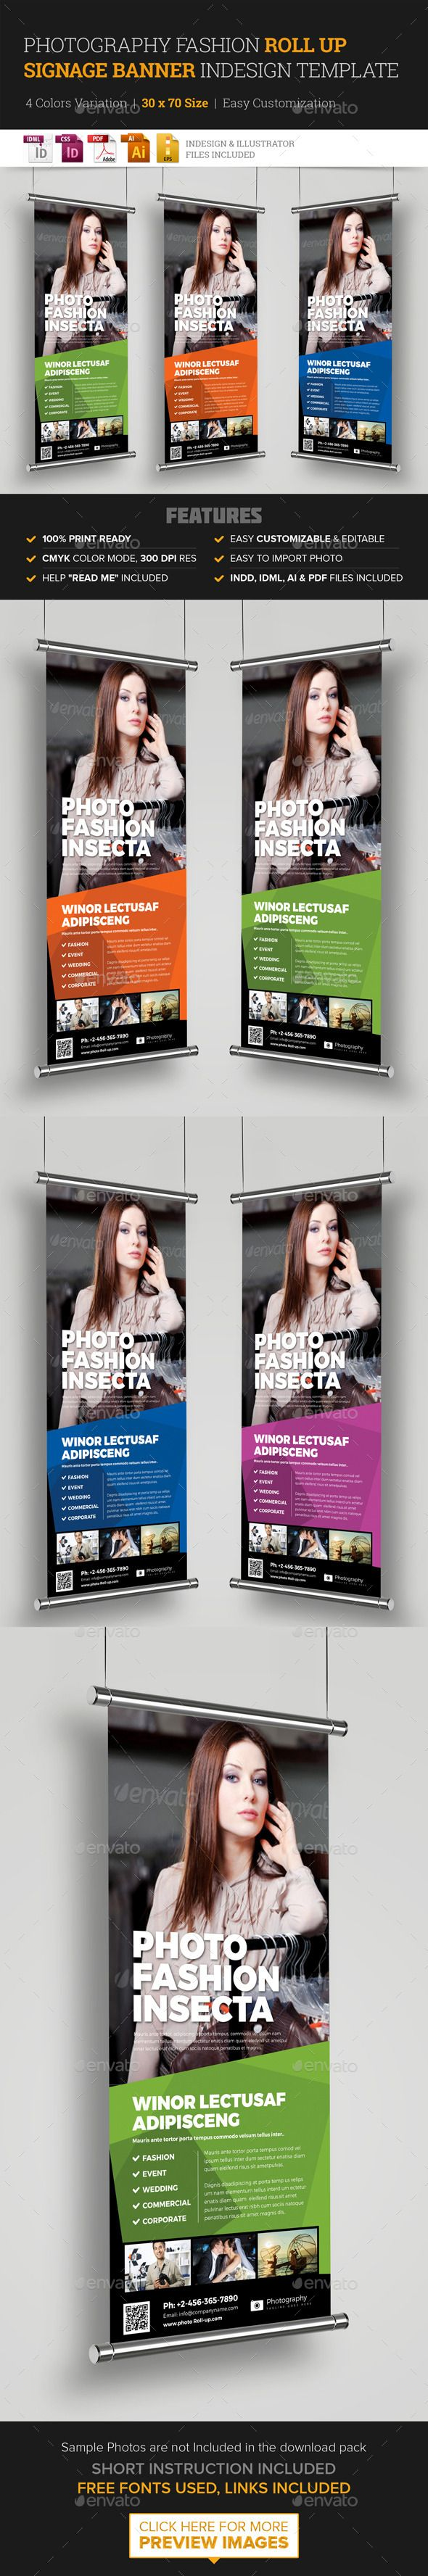 Photography Fashion Roll Up Banner Signage#design #brochure #catalog #flyer #ban...